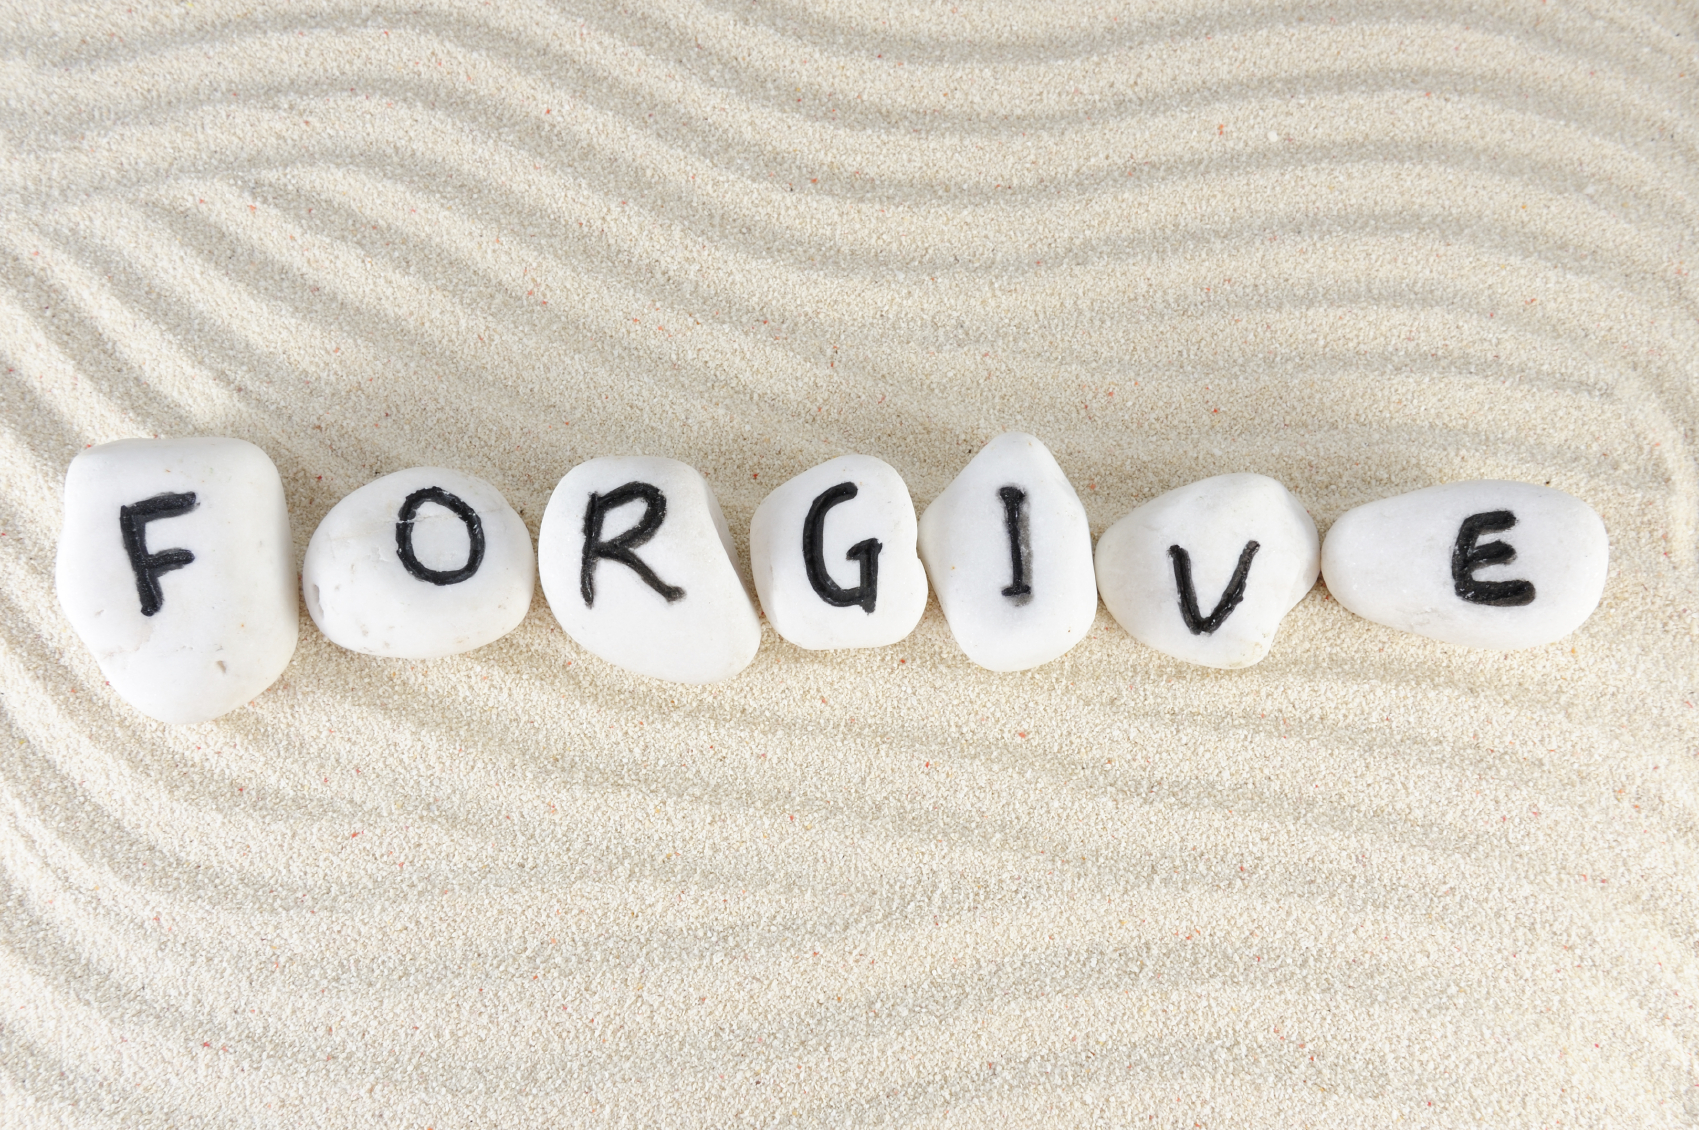 When We Forgive